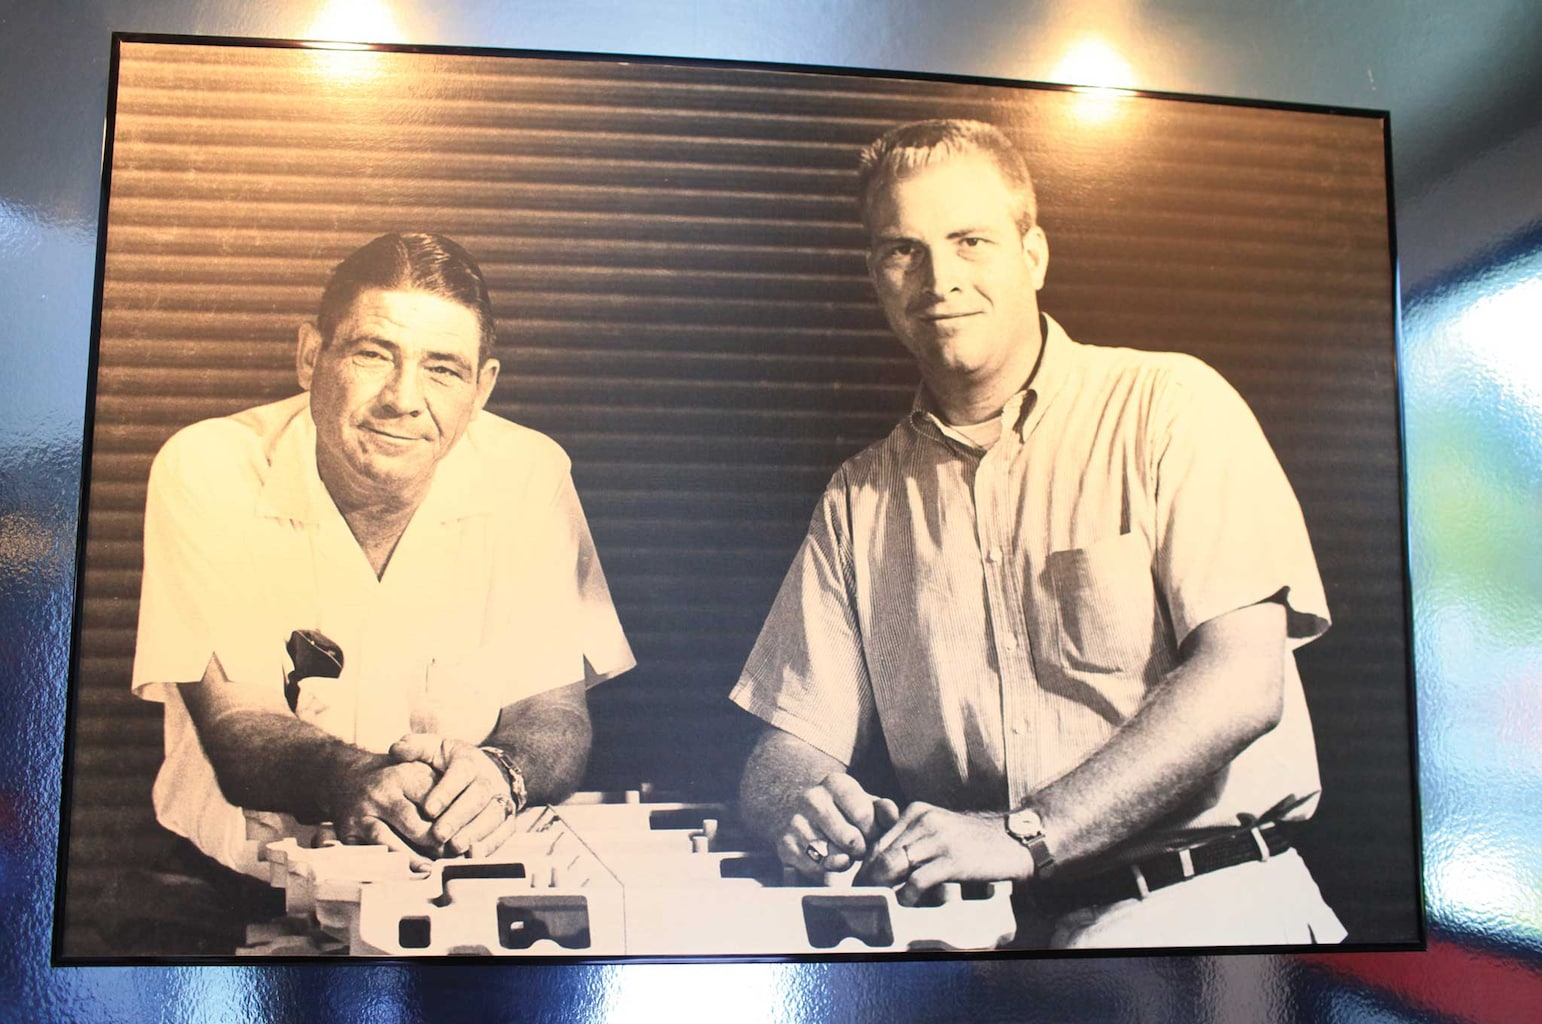 The Edelbrocks, Vic Edelbrock Sr. and Jr. The most respected names in the performance industry.